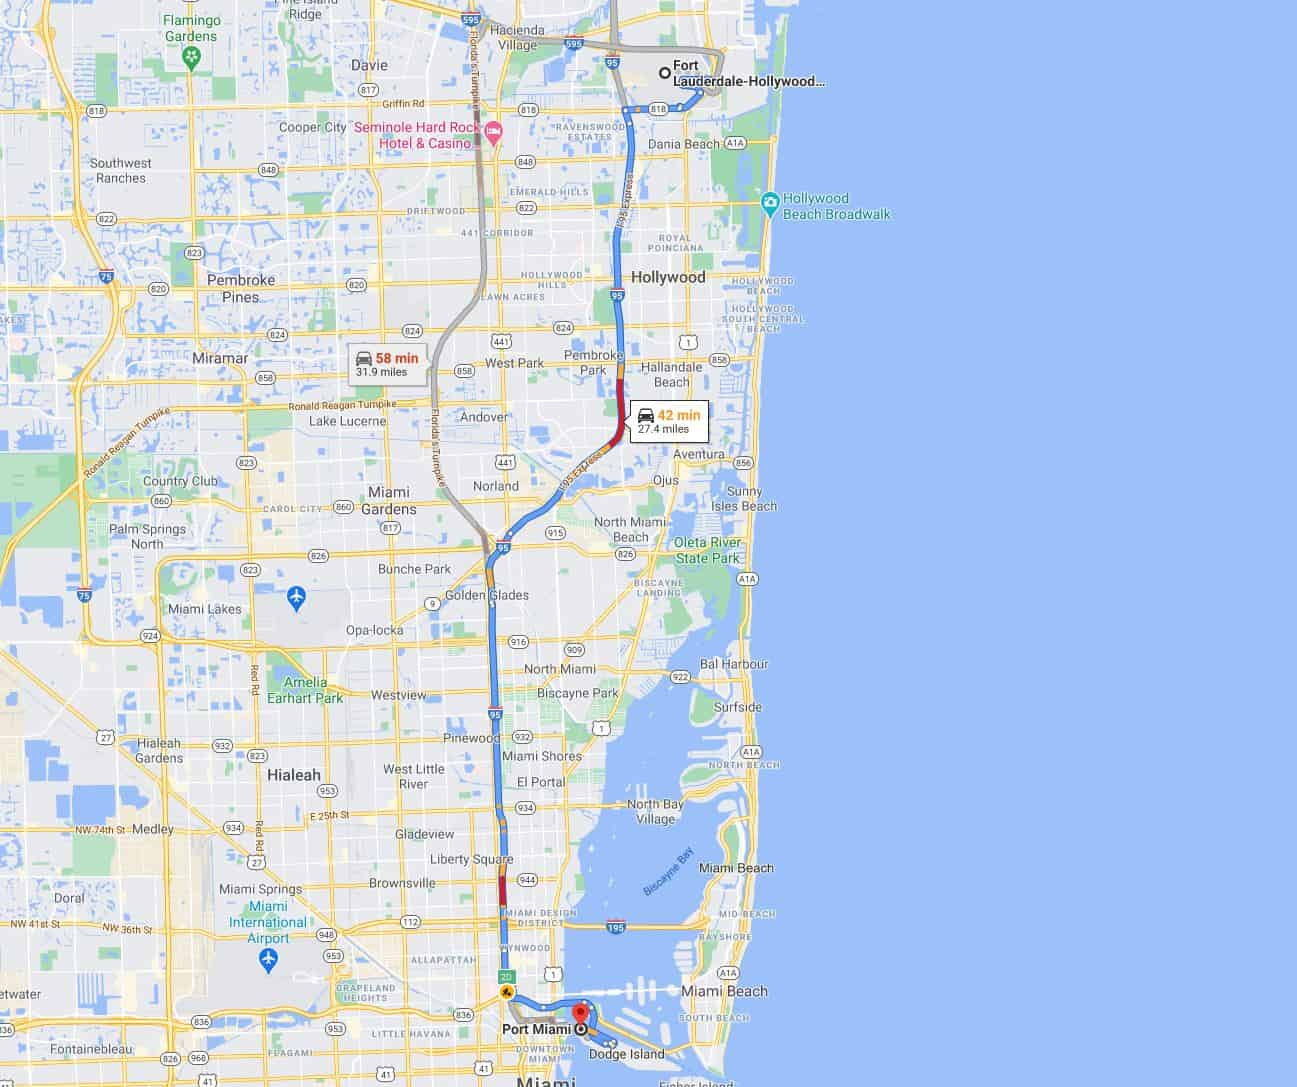 Fort Lauderdale Airport to Miami Port Route